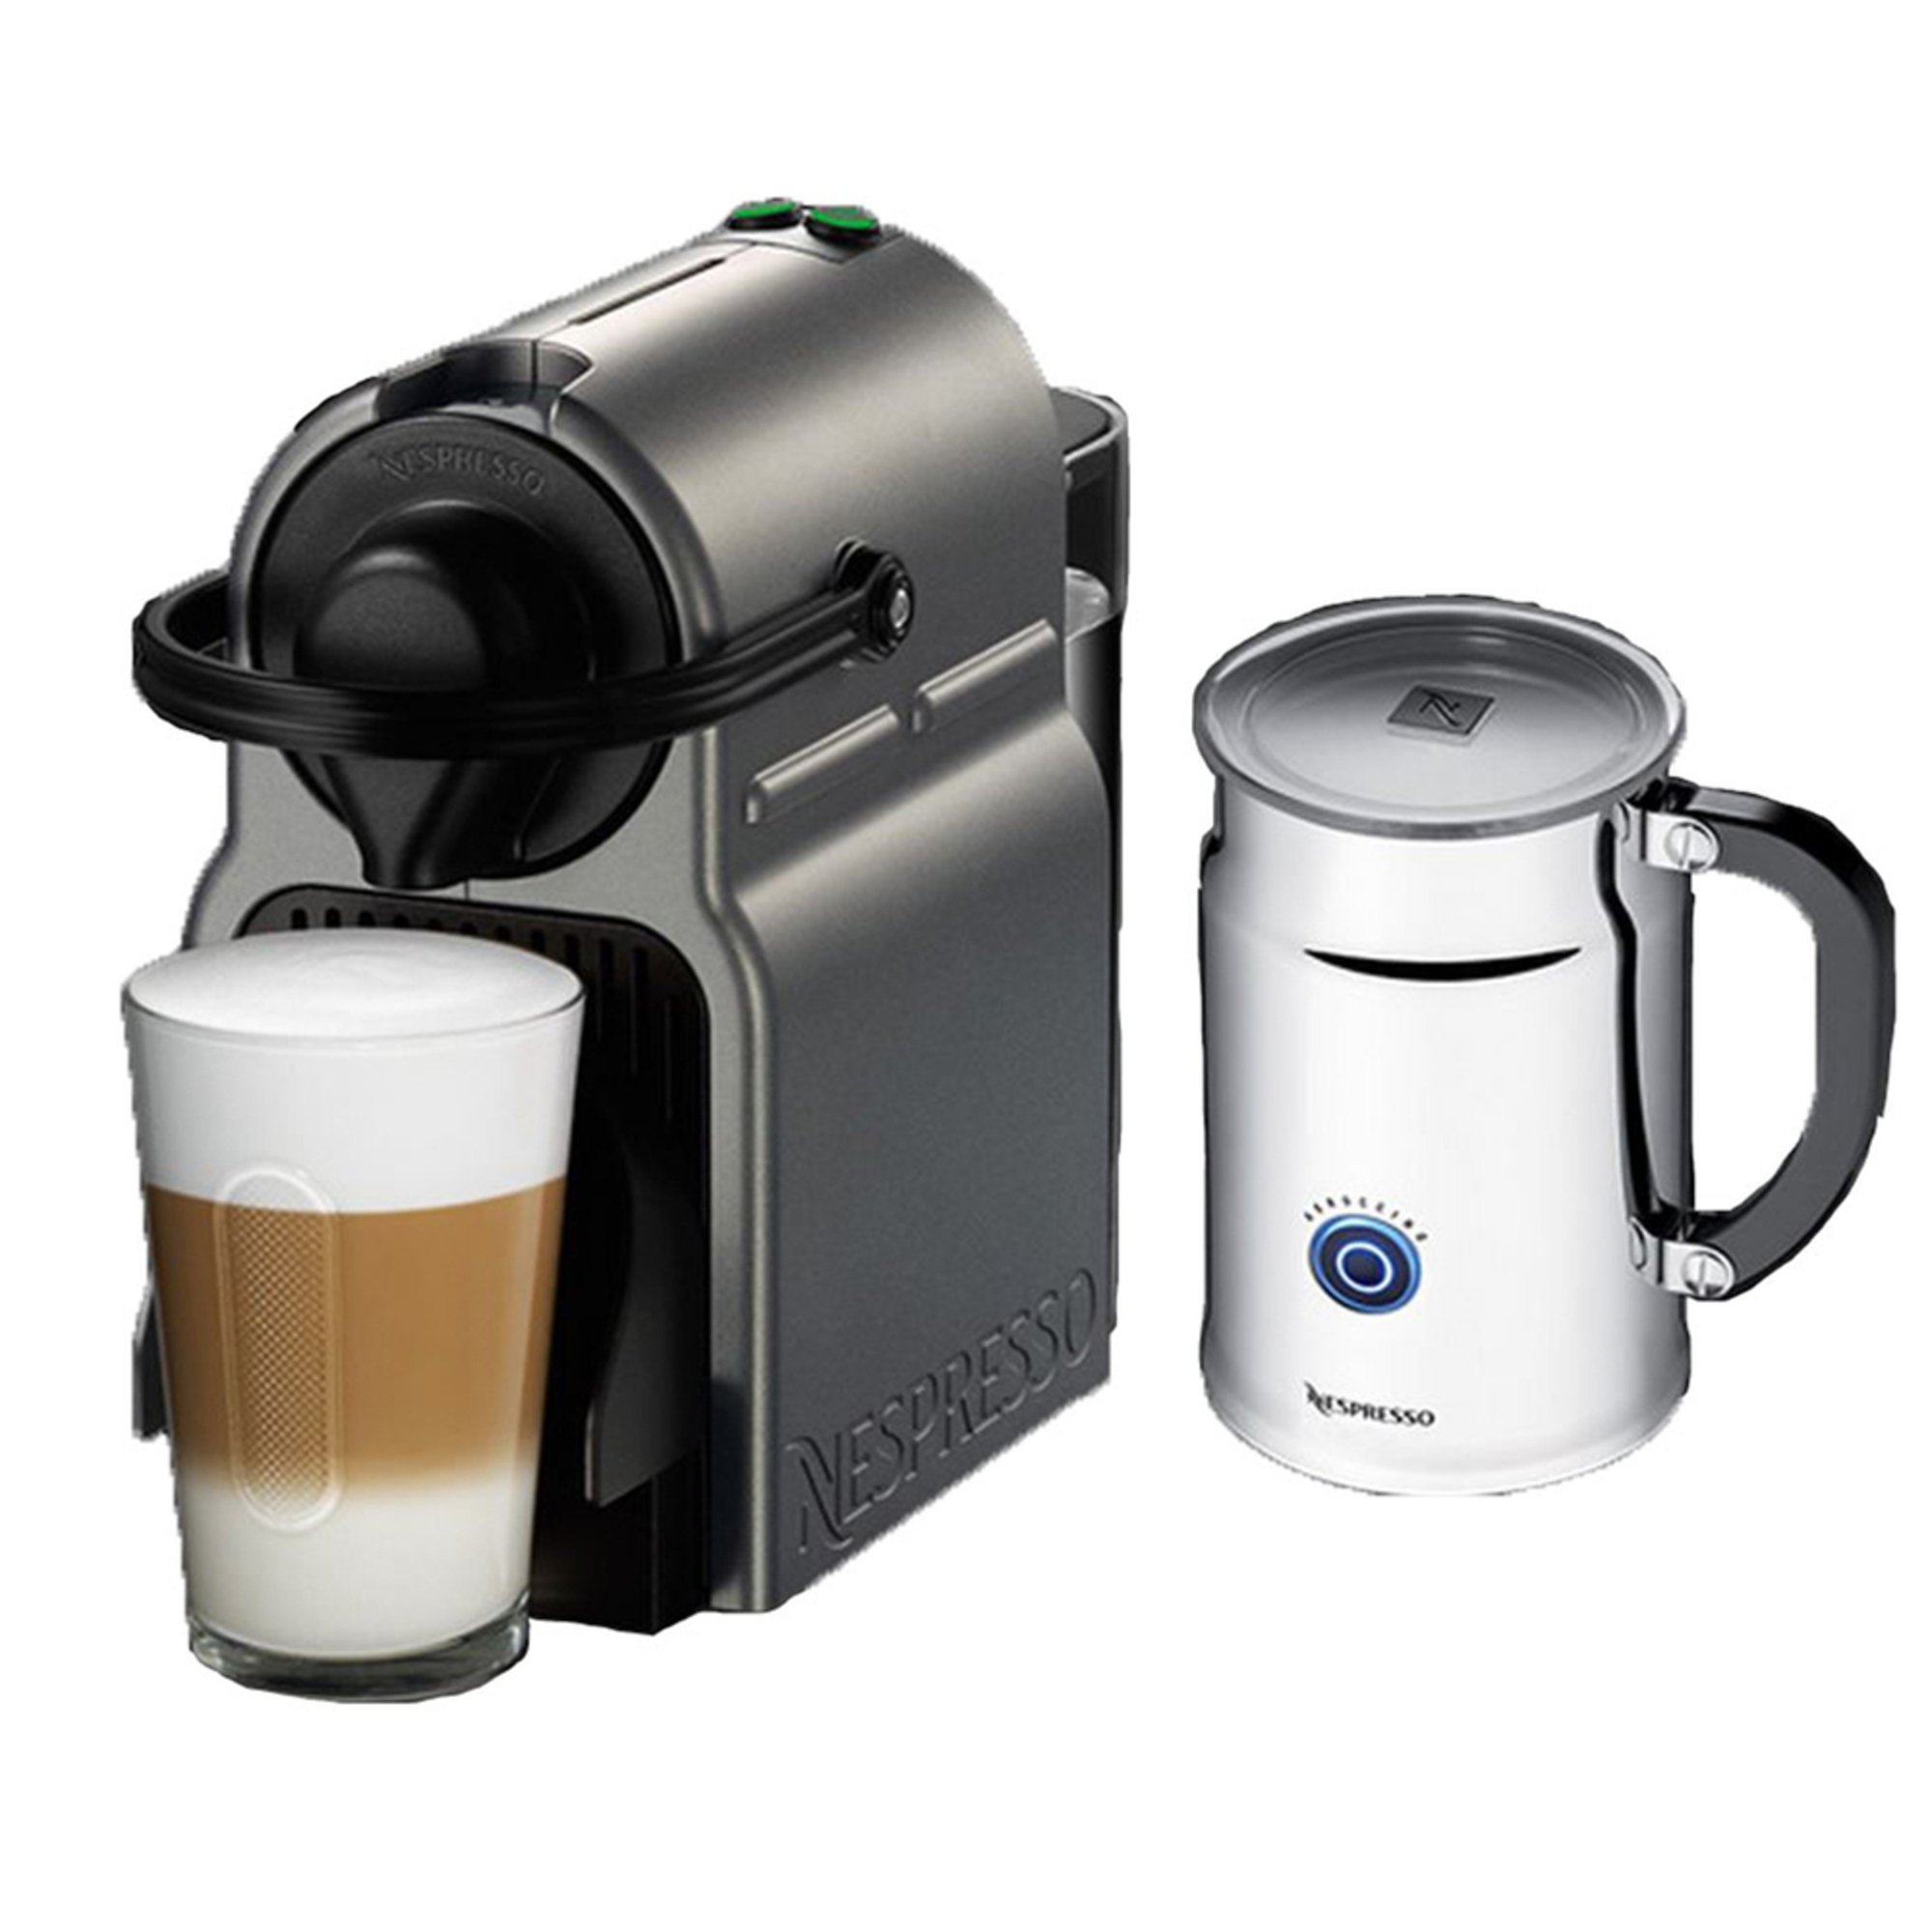 nespresso inissia espresso maker with aeroccino plus milk frother a c40 us ti ne espresso. Black Bedroom Furniture Sets. Home Design Ideas